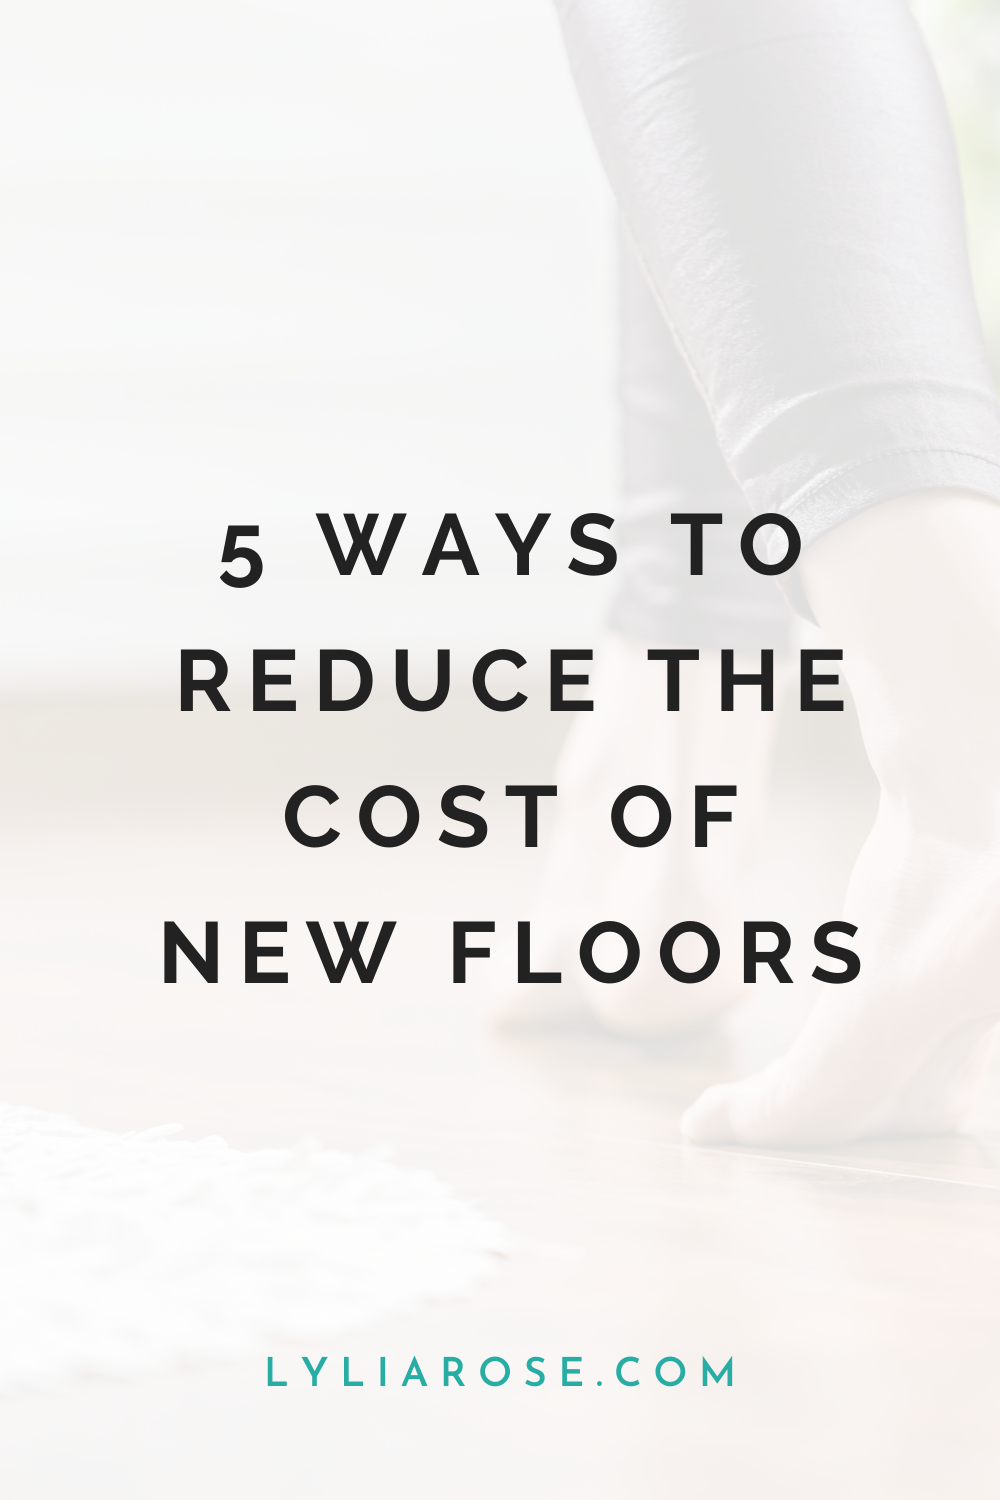 5 ways to reduce the cost of new floors